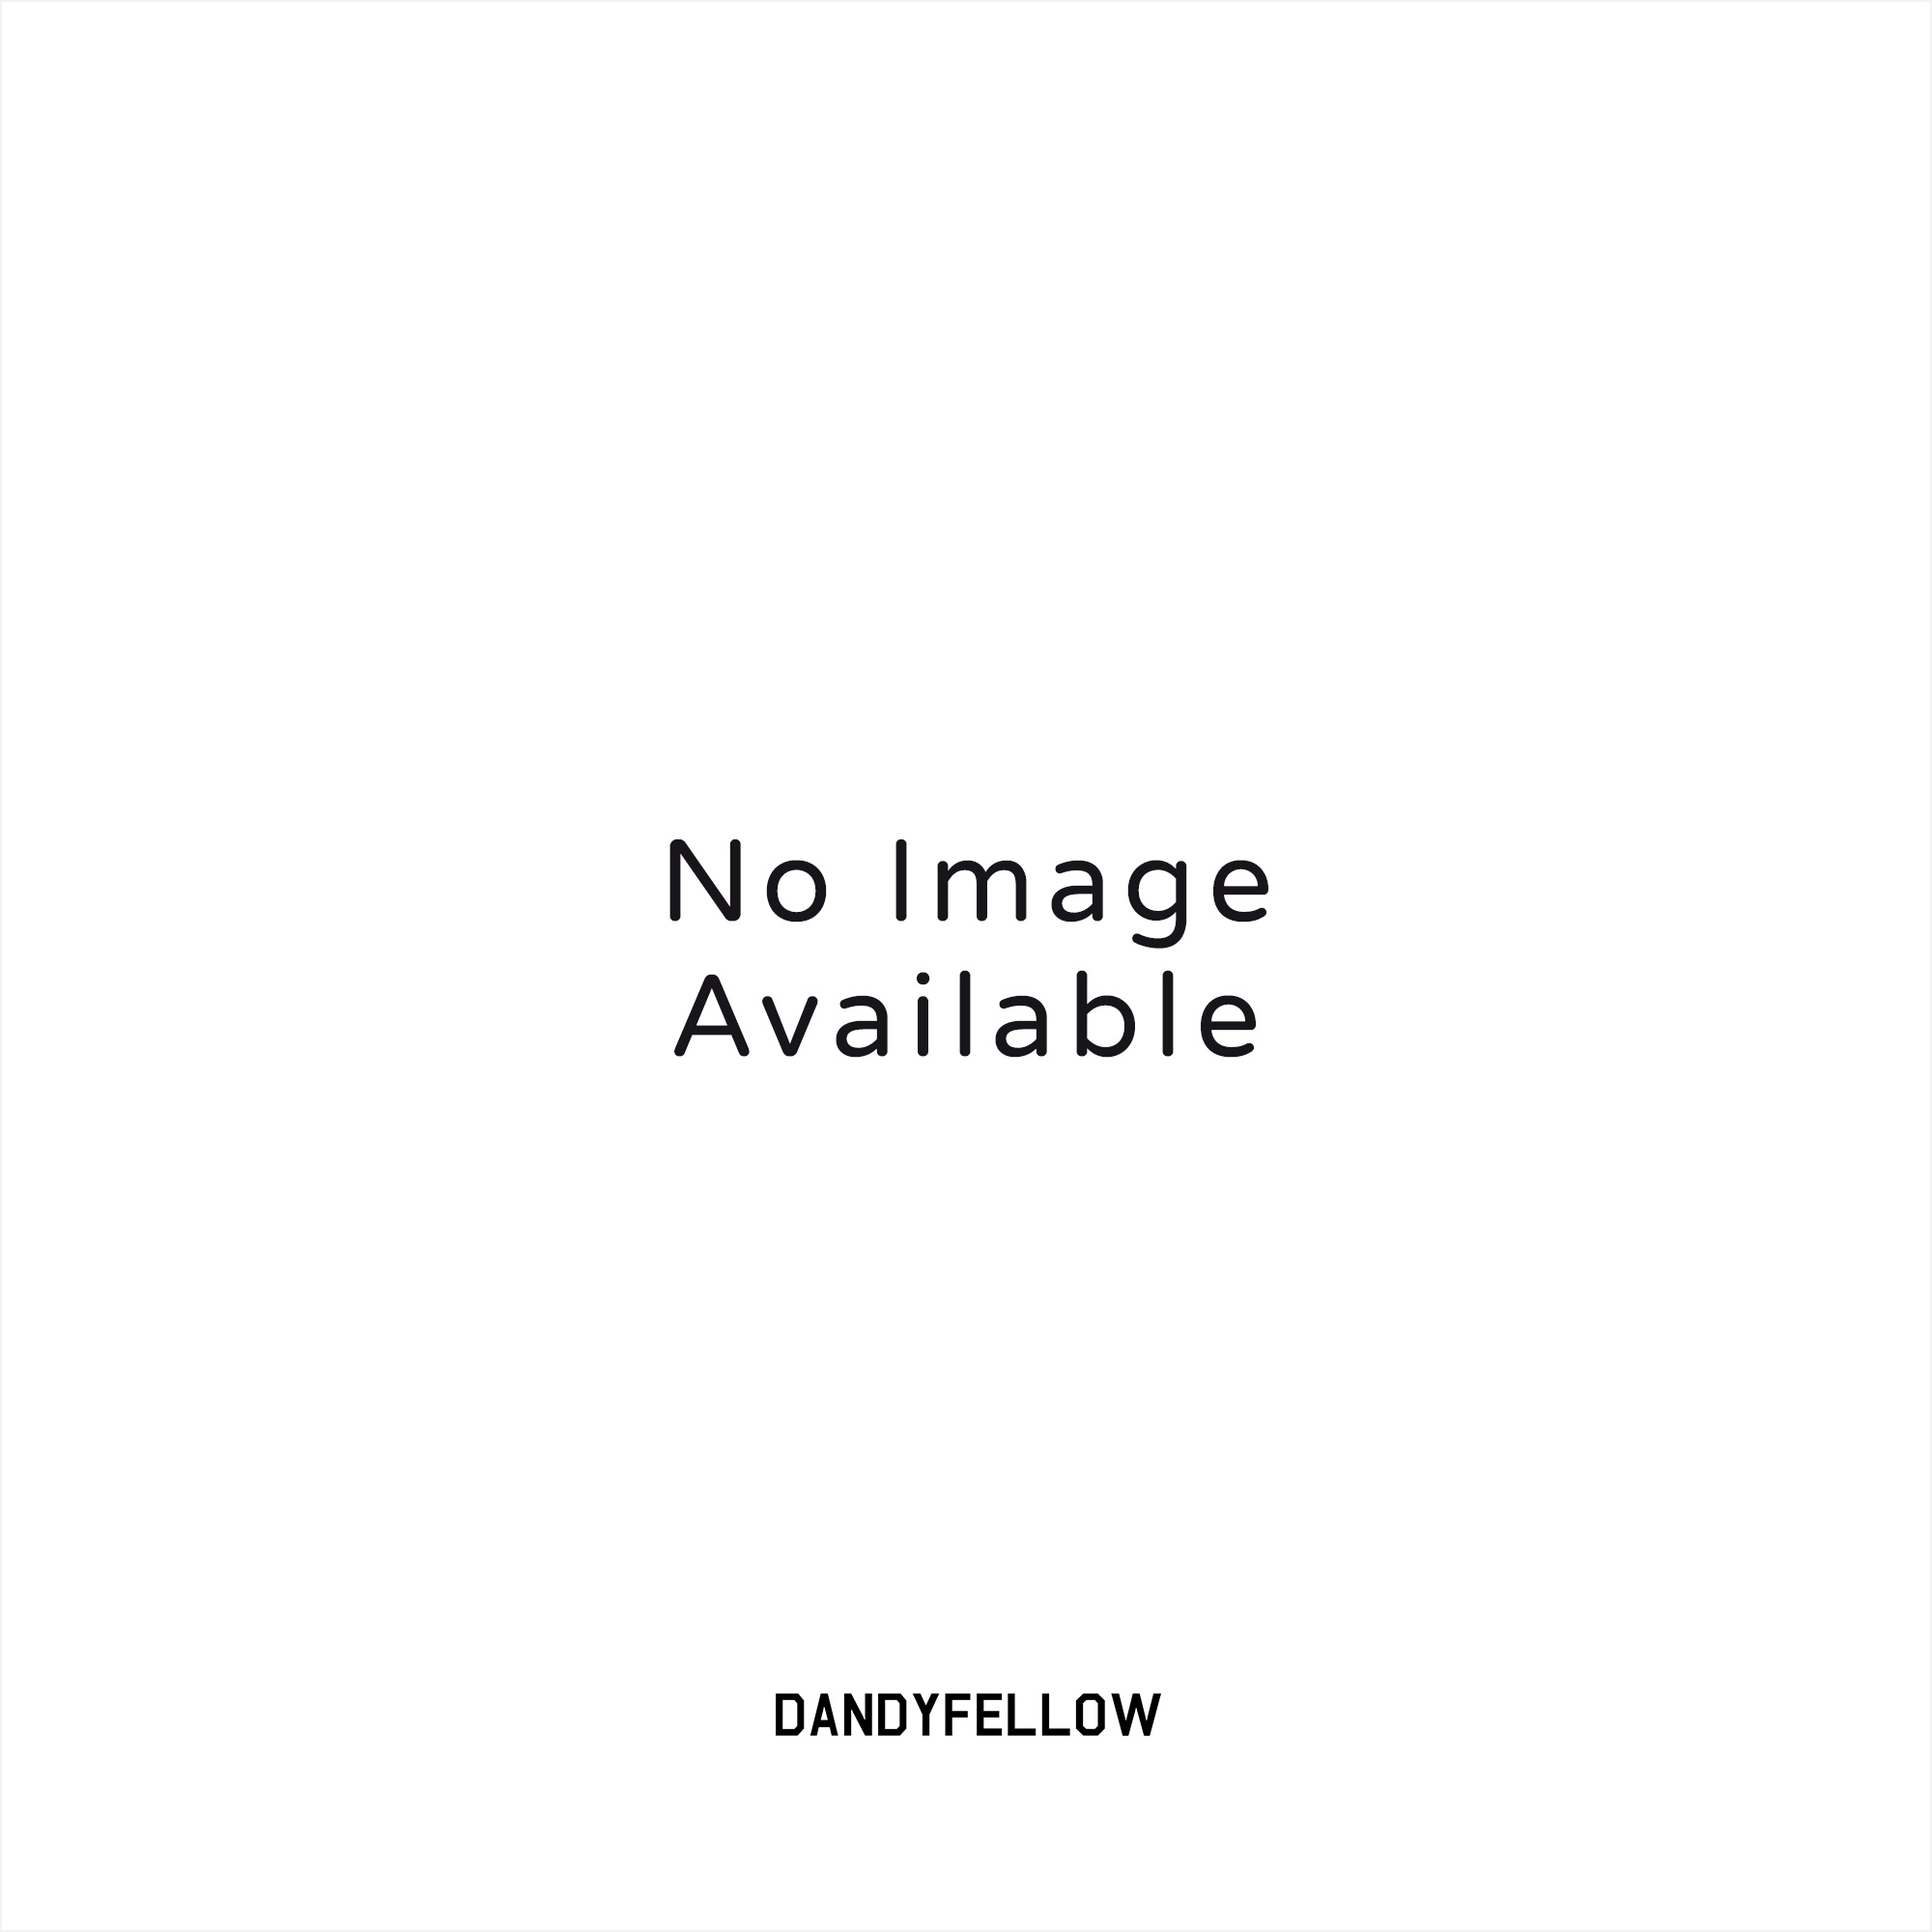 0dde48e4c81 Bally Helvio Sneakers (White) at Dandy Fellow